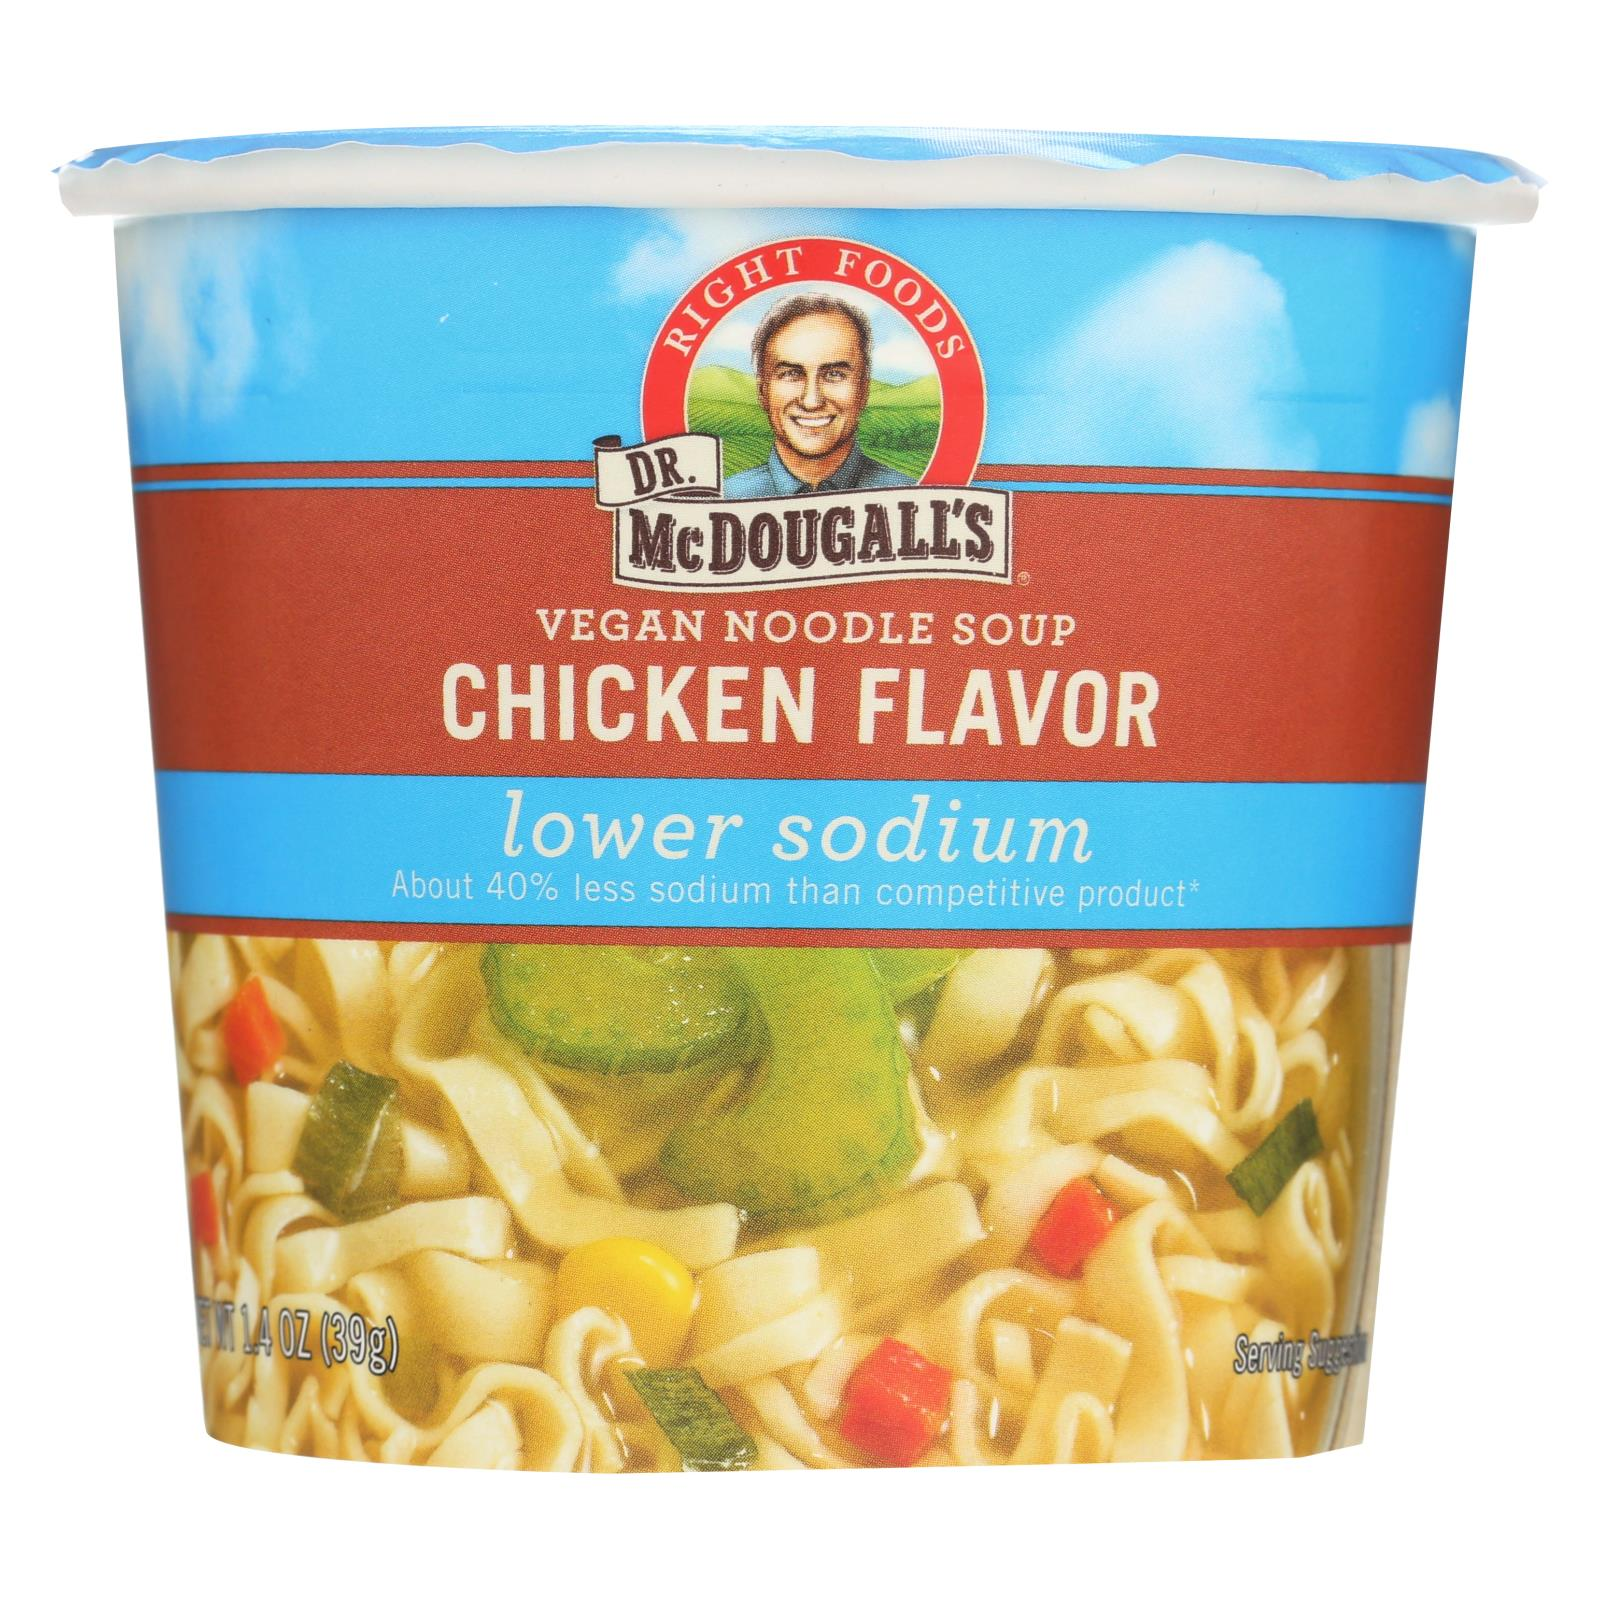 Dr. Mcdougall's Vegan Noodle Lower Sodium Soup Cup - Chicken - Case Of 6 - 1.4 Oz. HG0212522